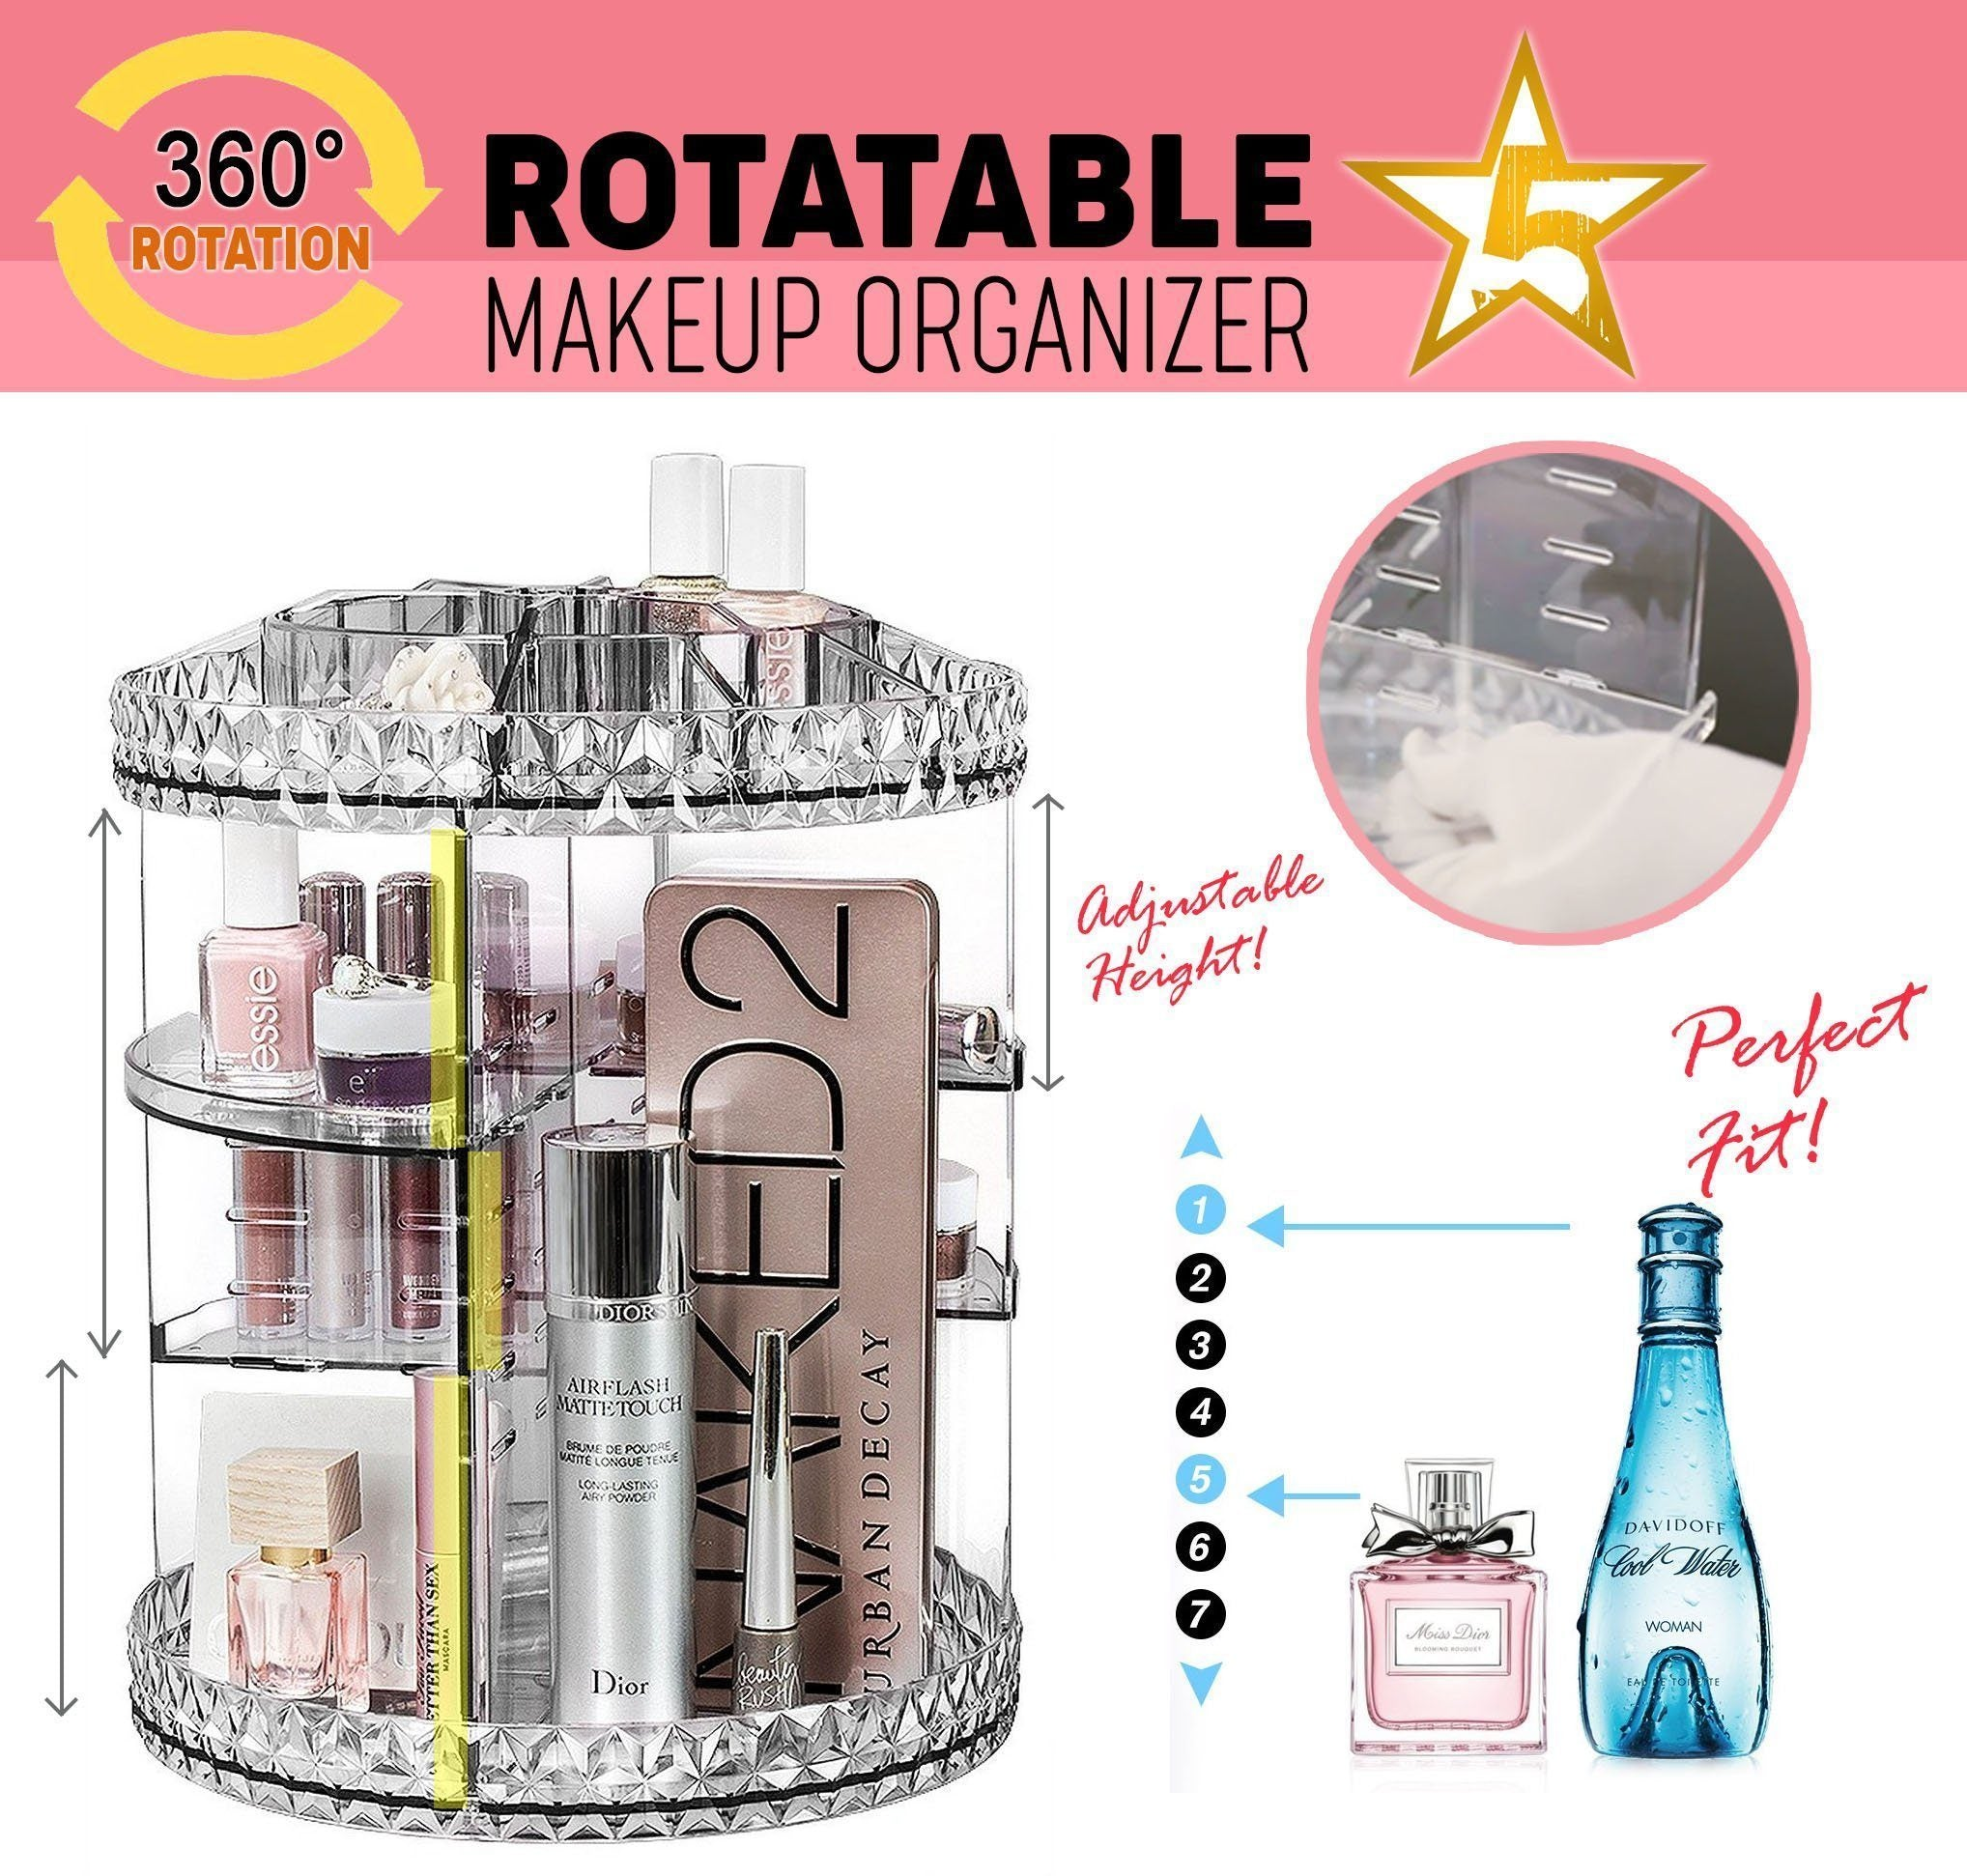 360° Rotatable Makeup Organizer